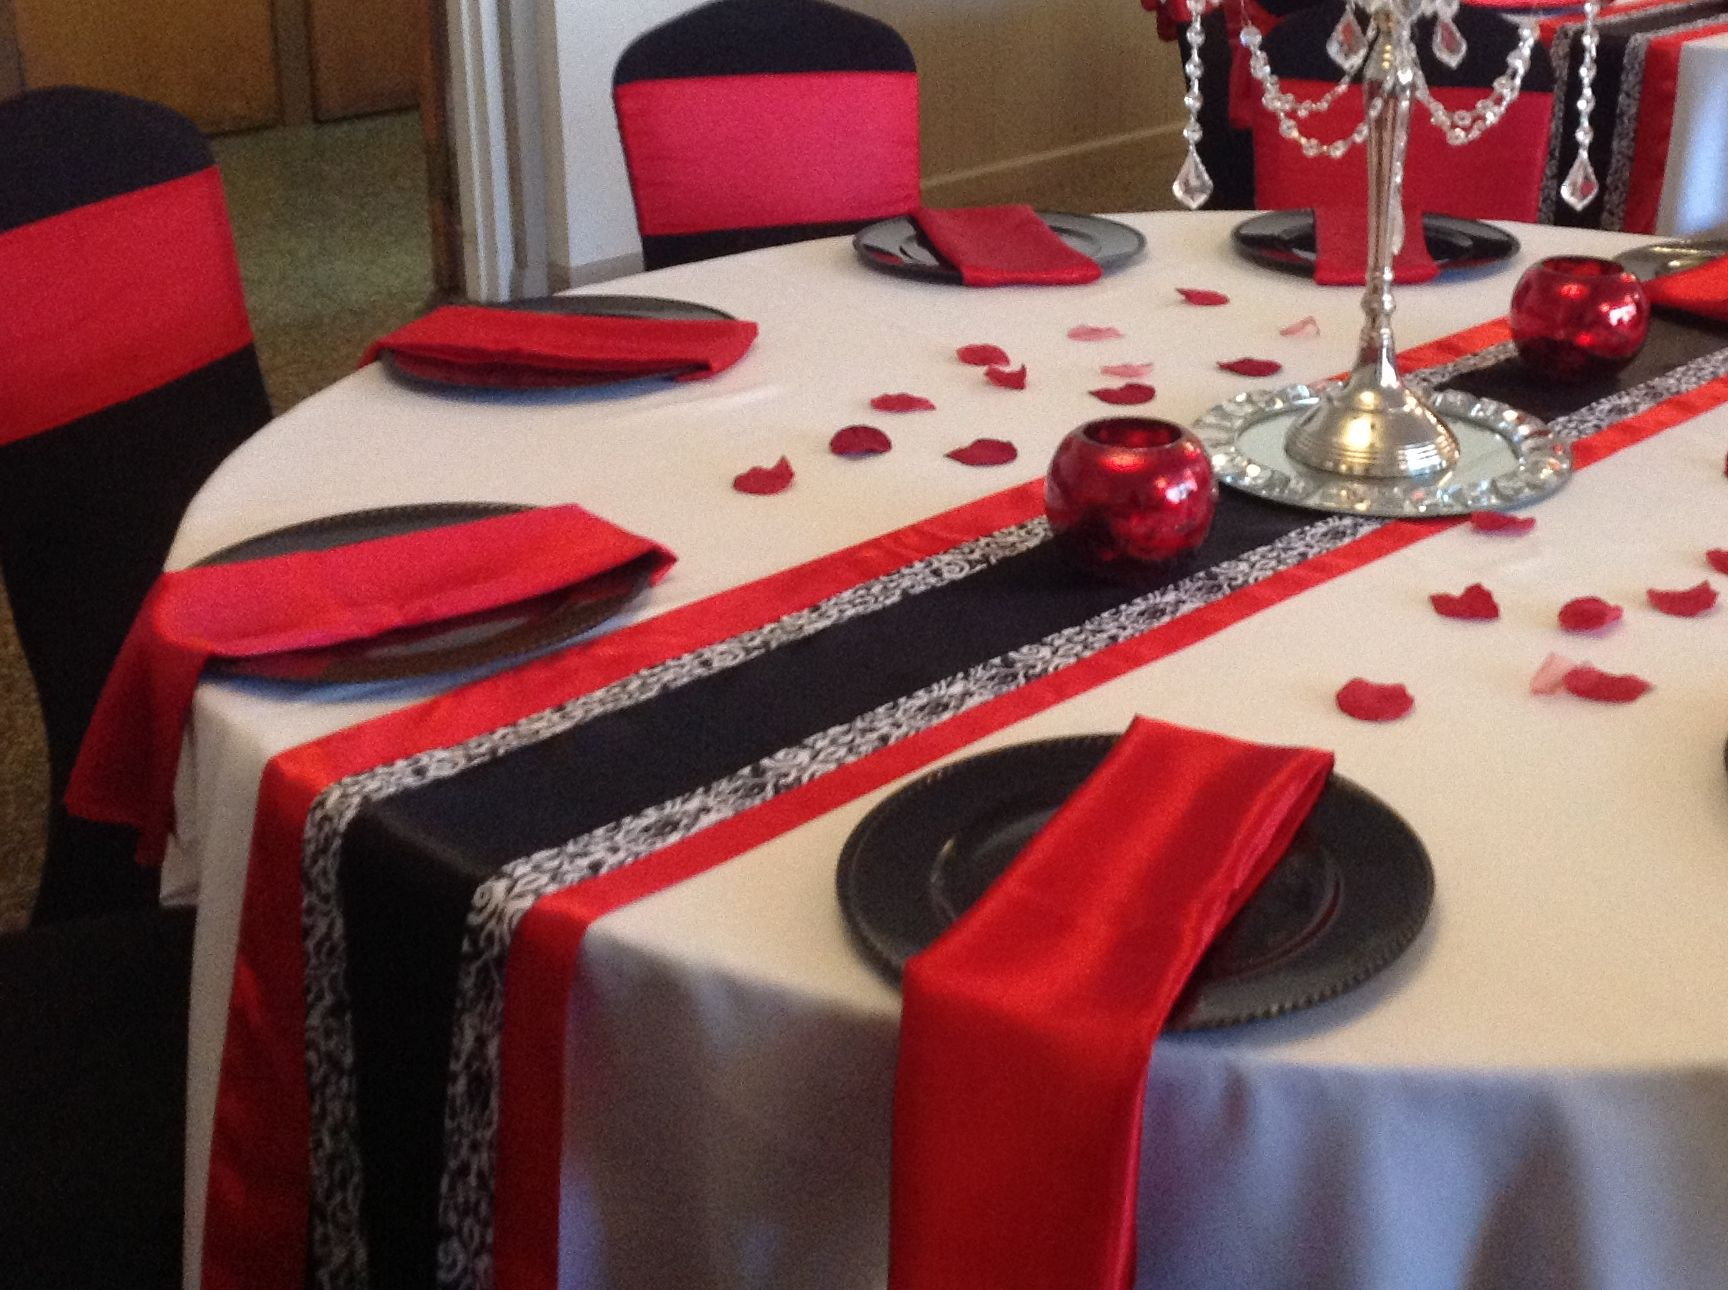 A Beautiful Table Setting ~ Design & Decor collaboration with Simply Elegant Events By Kim in Indianapolis, IN at The Knights of Columbus   Check us out!!!